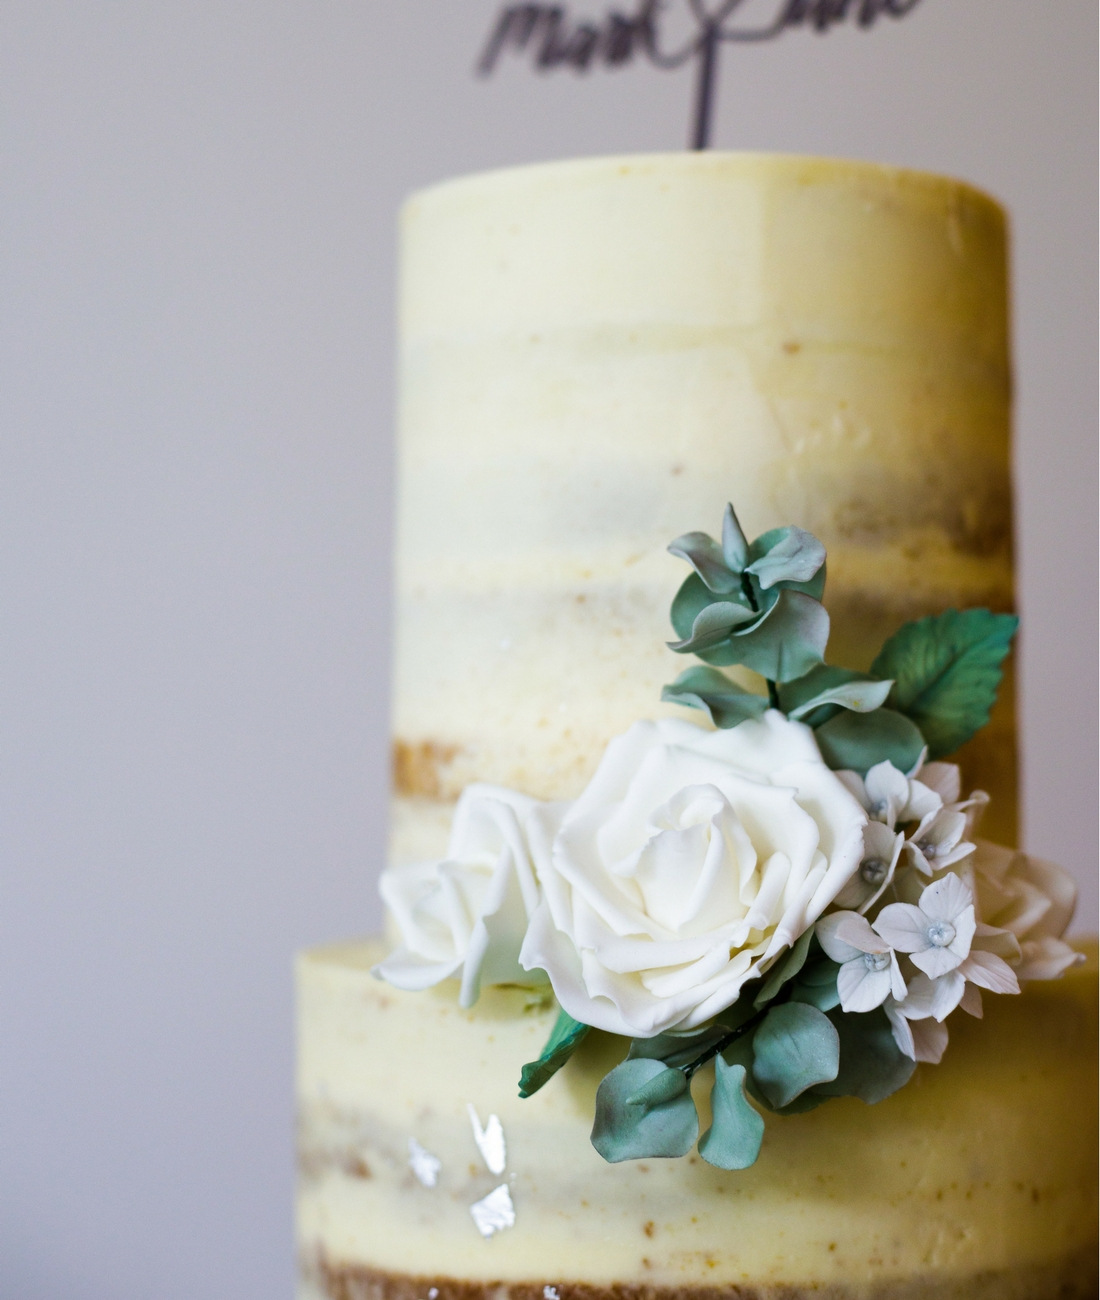 Love Artisan Wedding Cakes - Naked Ivory Floral Wedding Cake